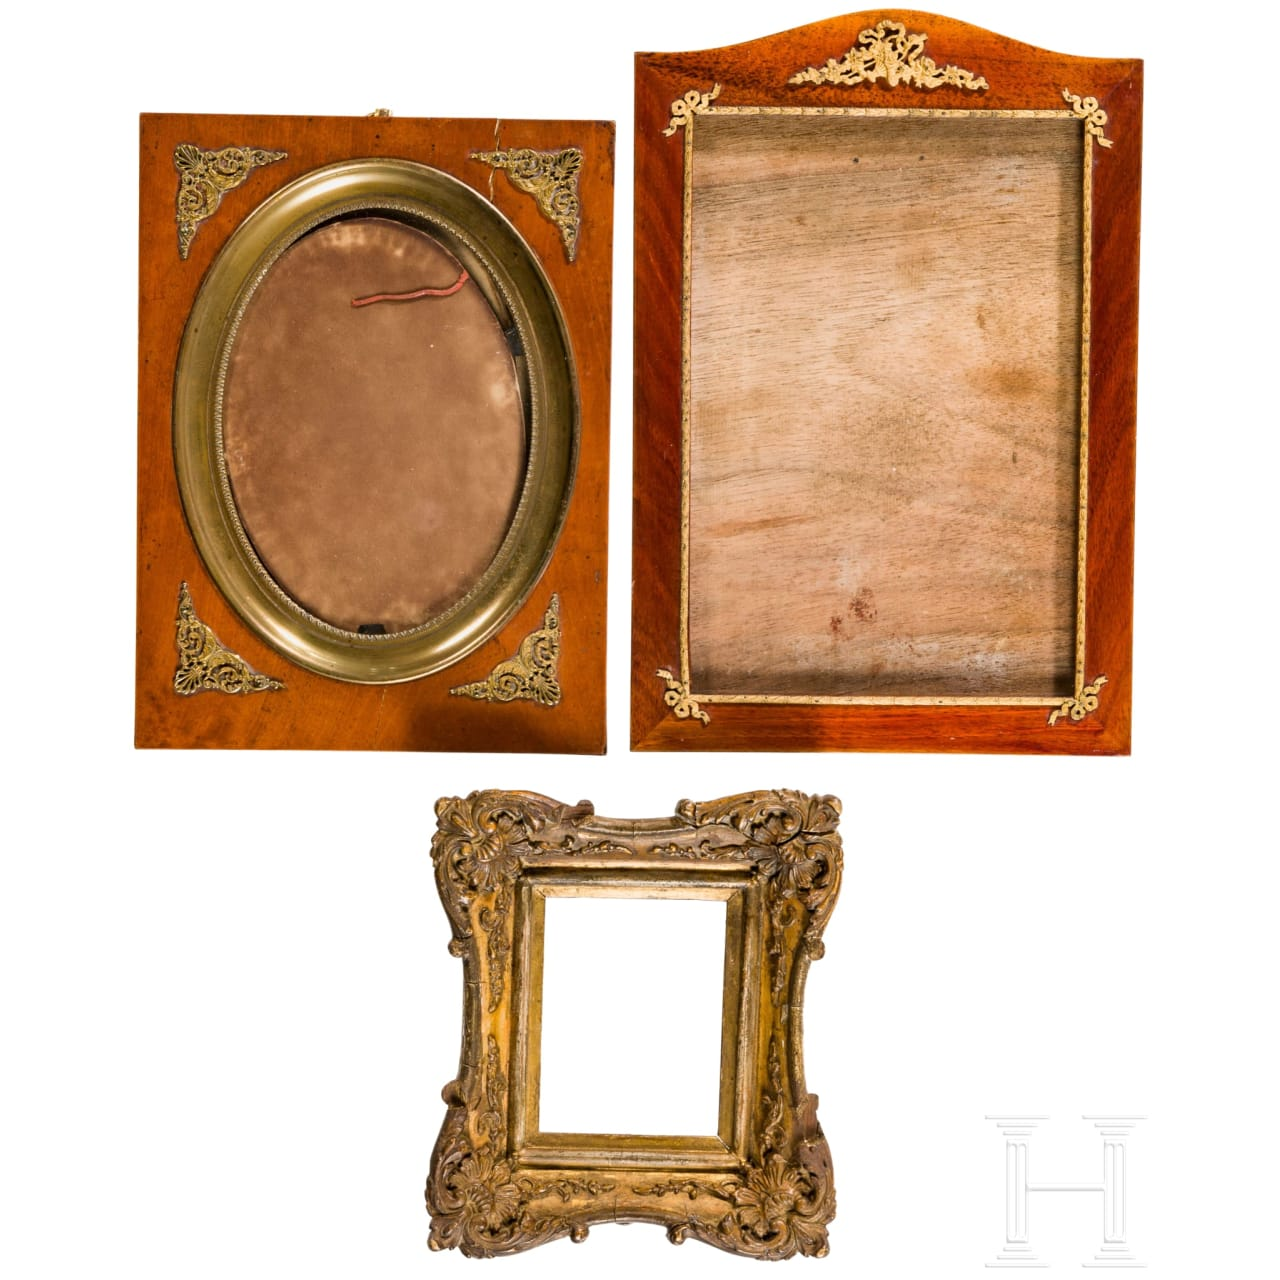 A set of three neo-classical German portrait frames, 19th century